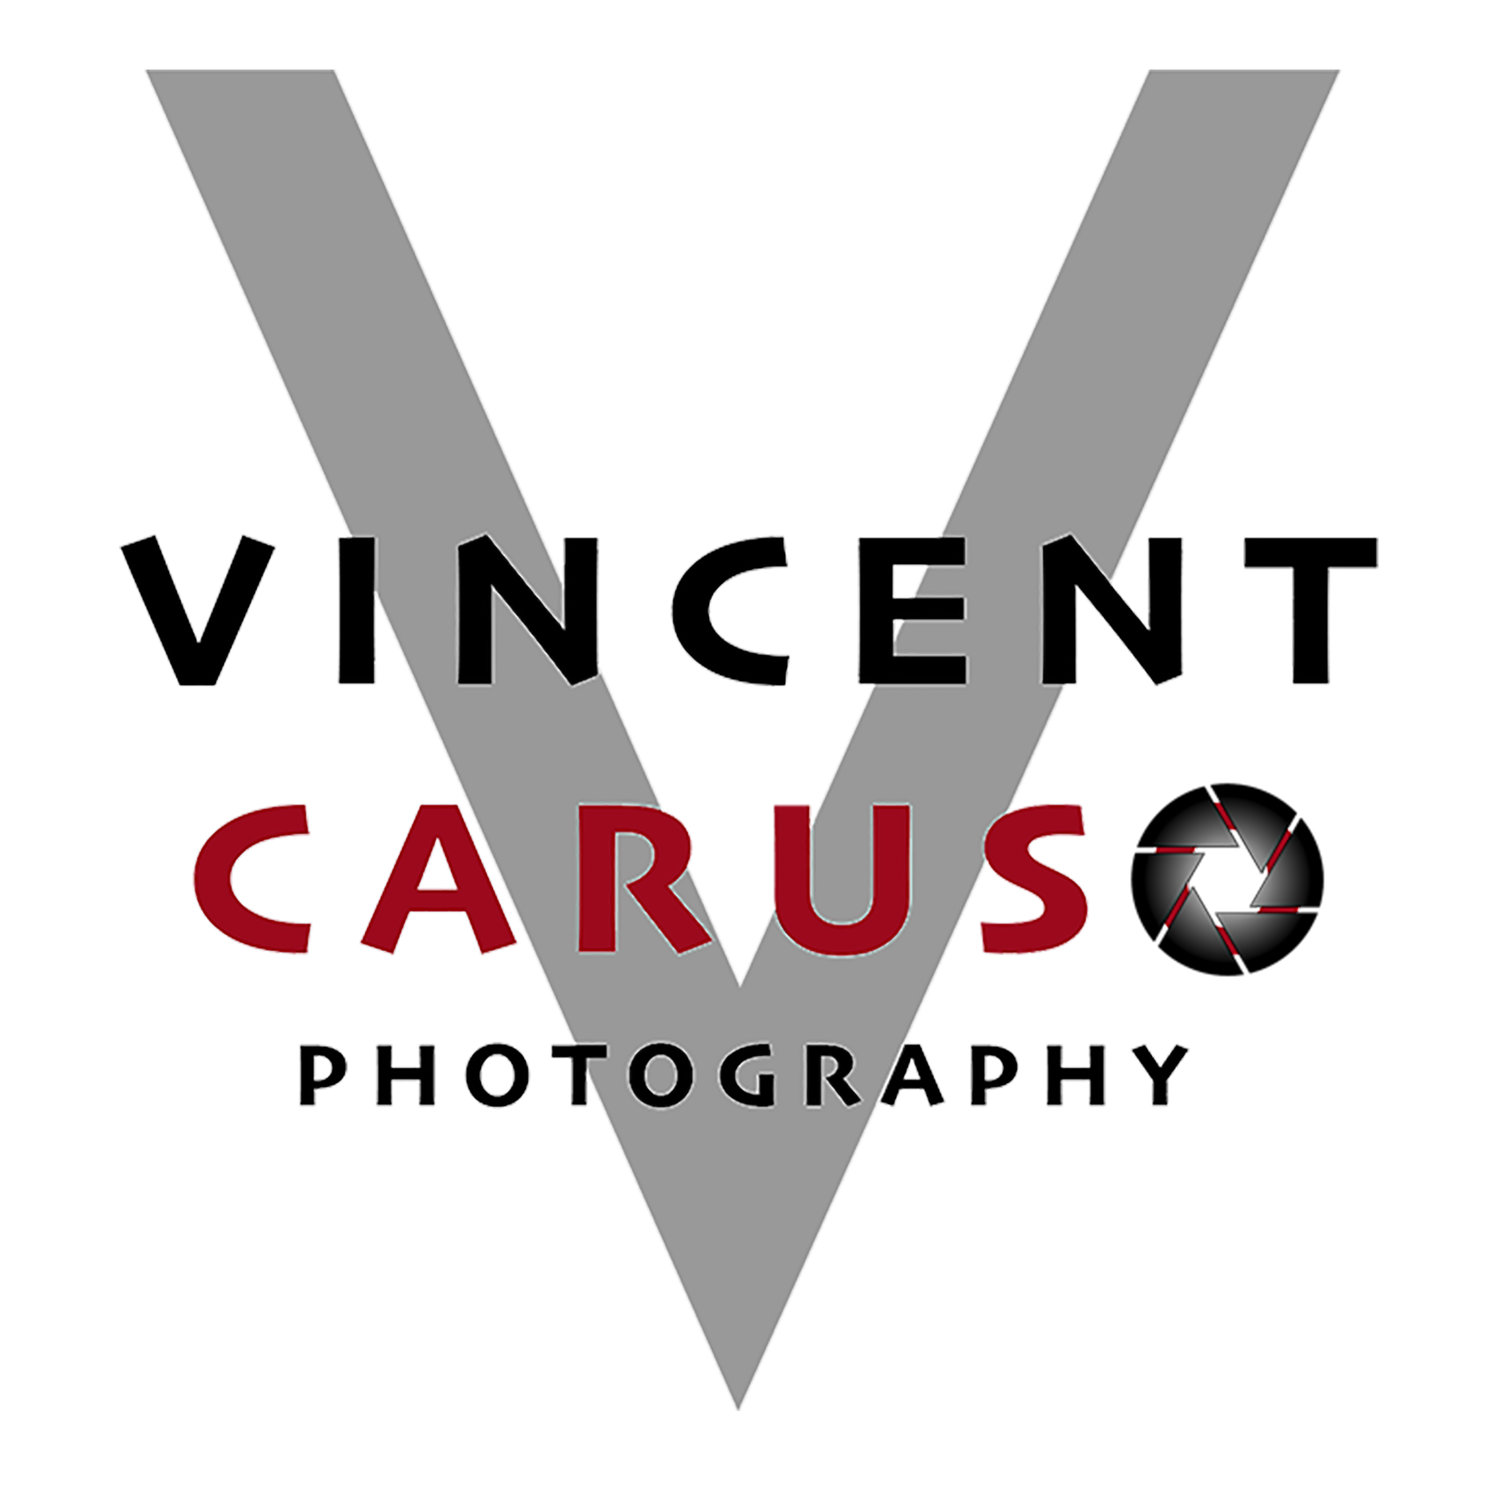 Vincent Caruso Photography